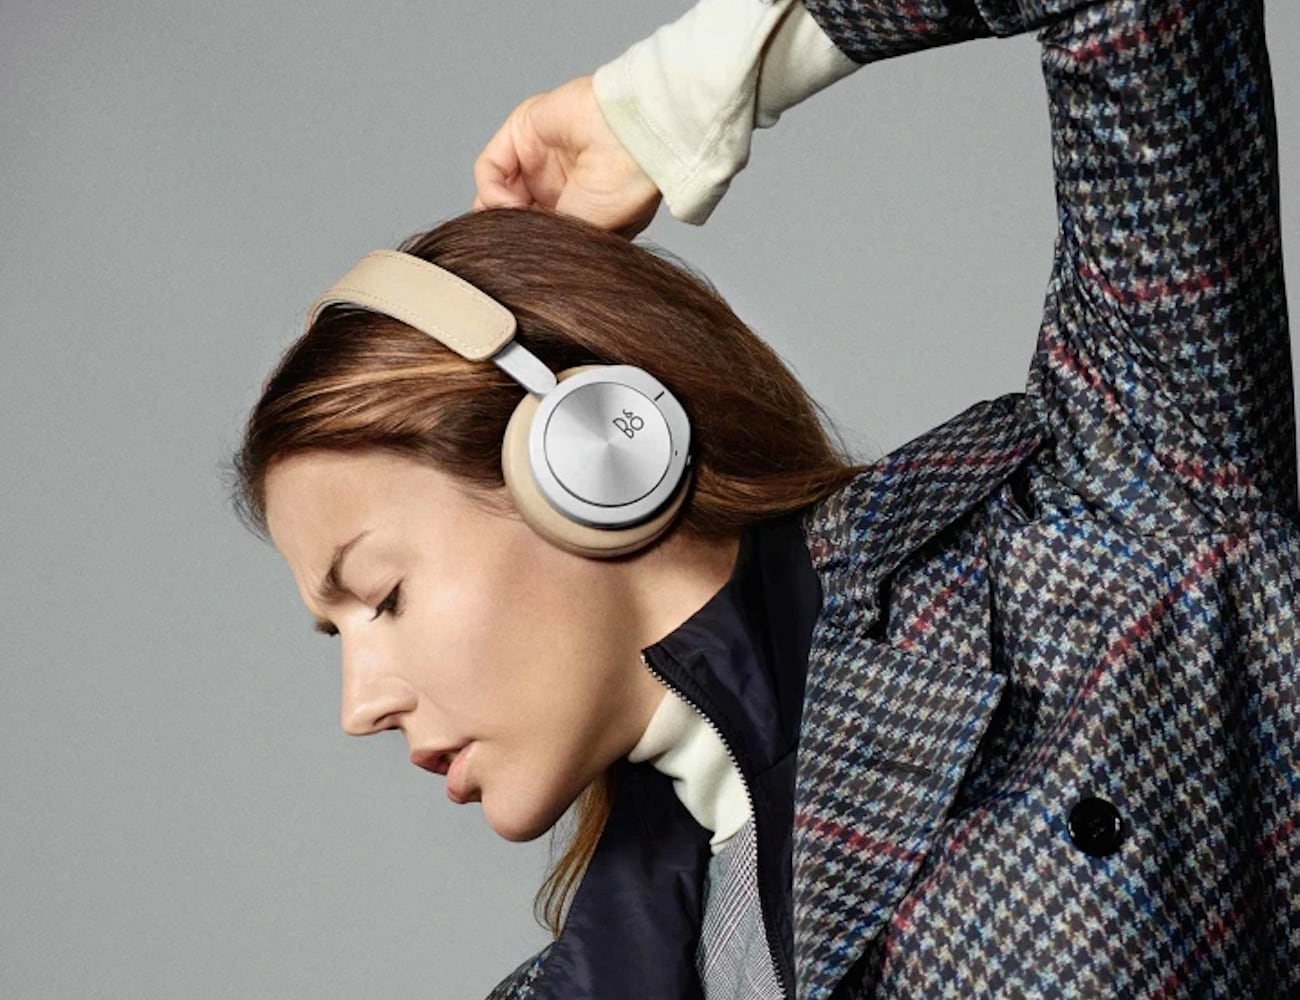 Bang & Olufsen Beoplay H8i Luxurious On-Ear Headphones are super comfortable